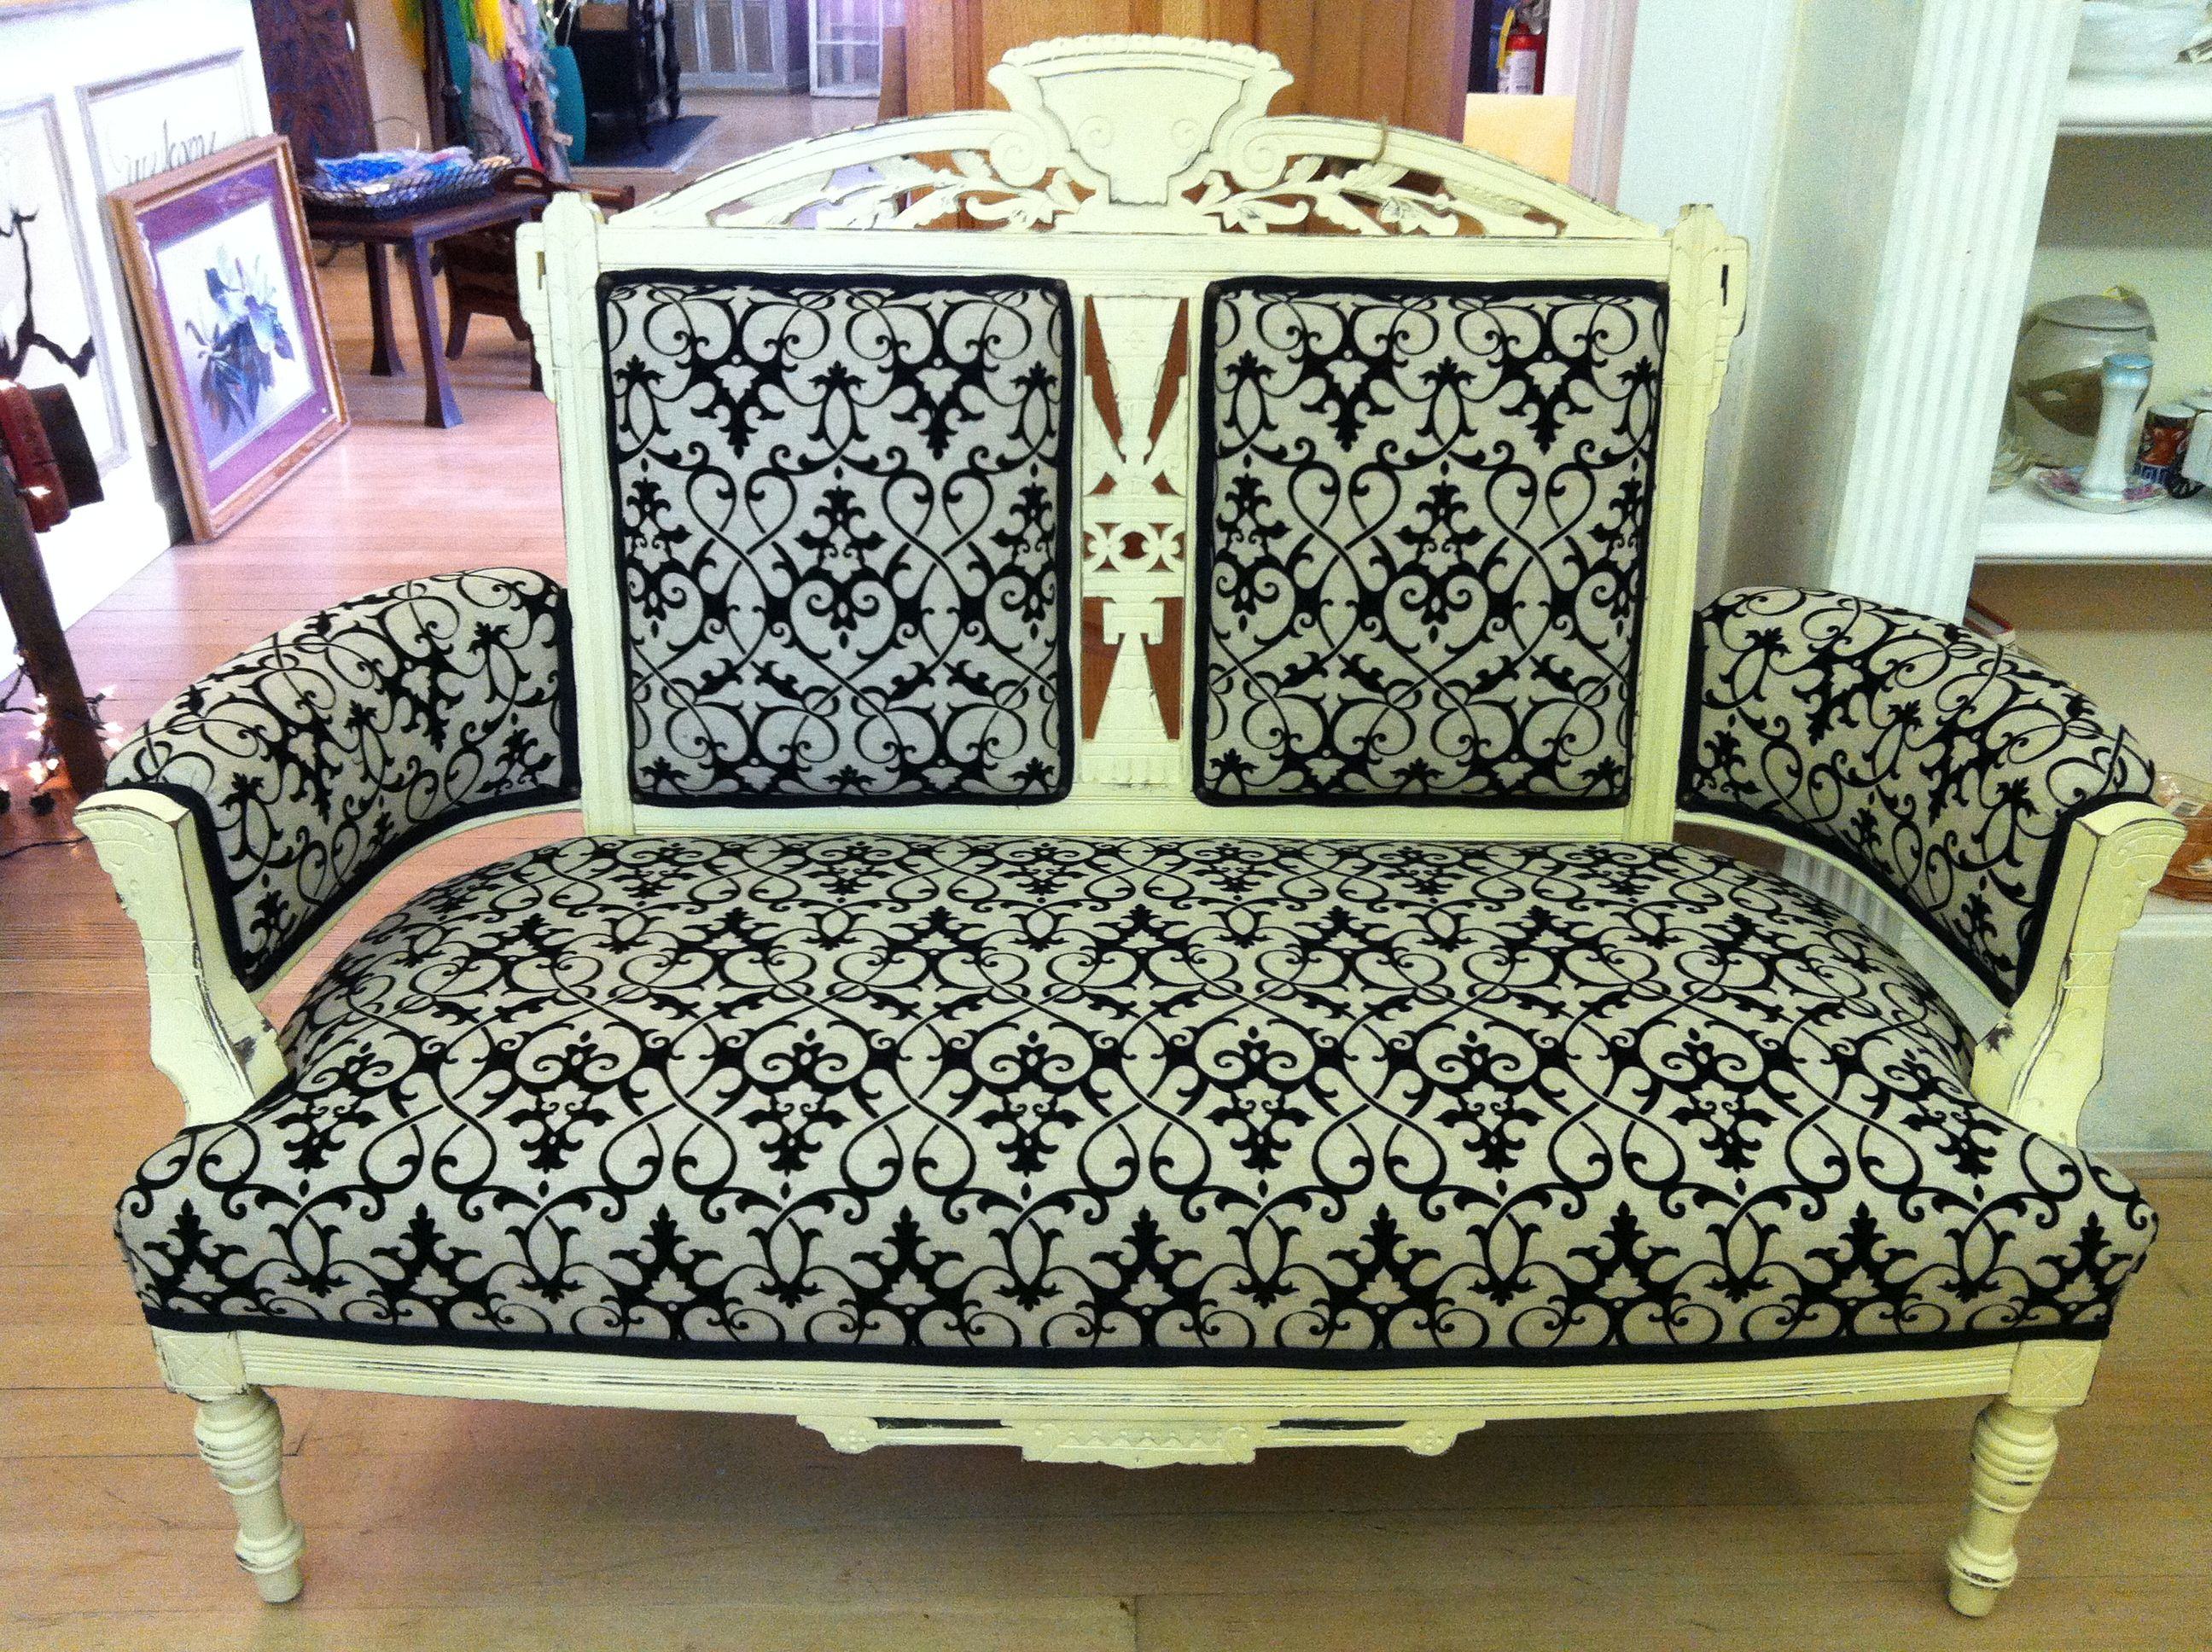 Vintage Sofa Lounge Winston Salem Vintage Settee Painted And Distressed Then Recovered With Material